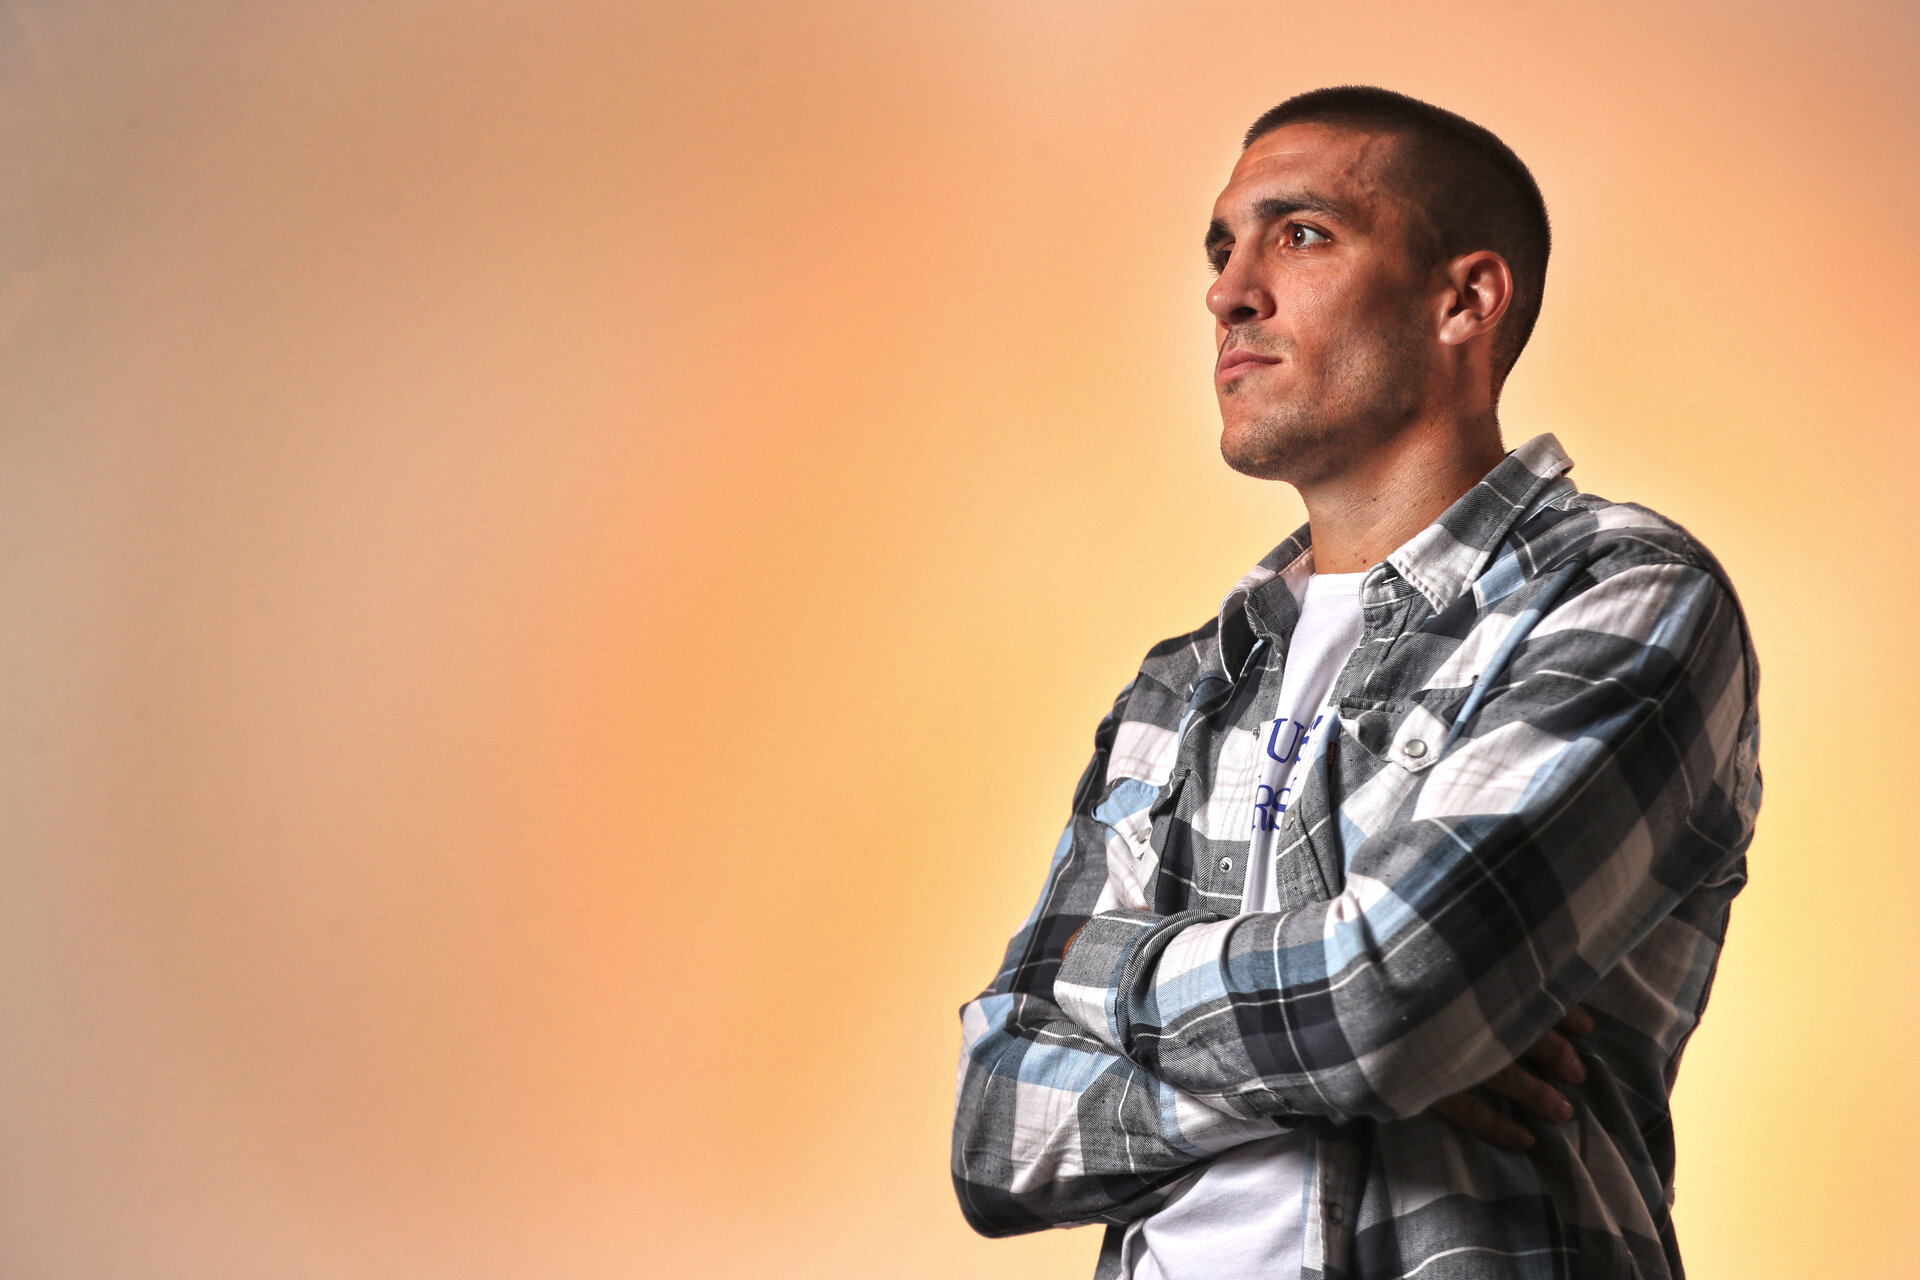 SOUTHAMPTON, ENGLAND - OCTOBER 16: Southampton FC's Oriol Romeu pictured at the Staplewood Campus, for the Club's matchday magazine, on October 16, 2018 in Southampton, England. (Photo by Matt Watson/Southampton FC via Getty Images)